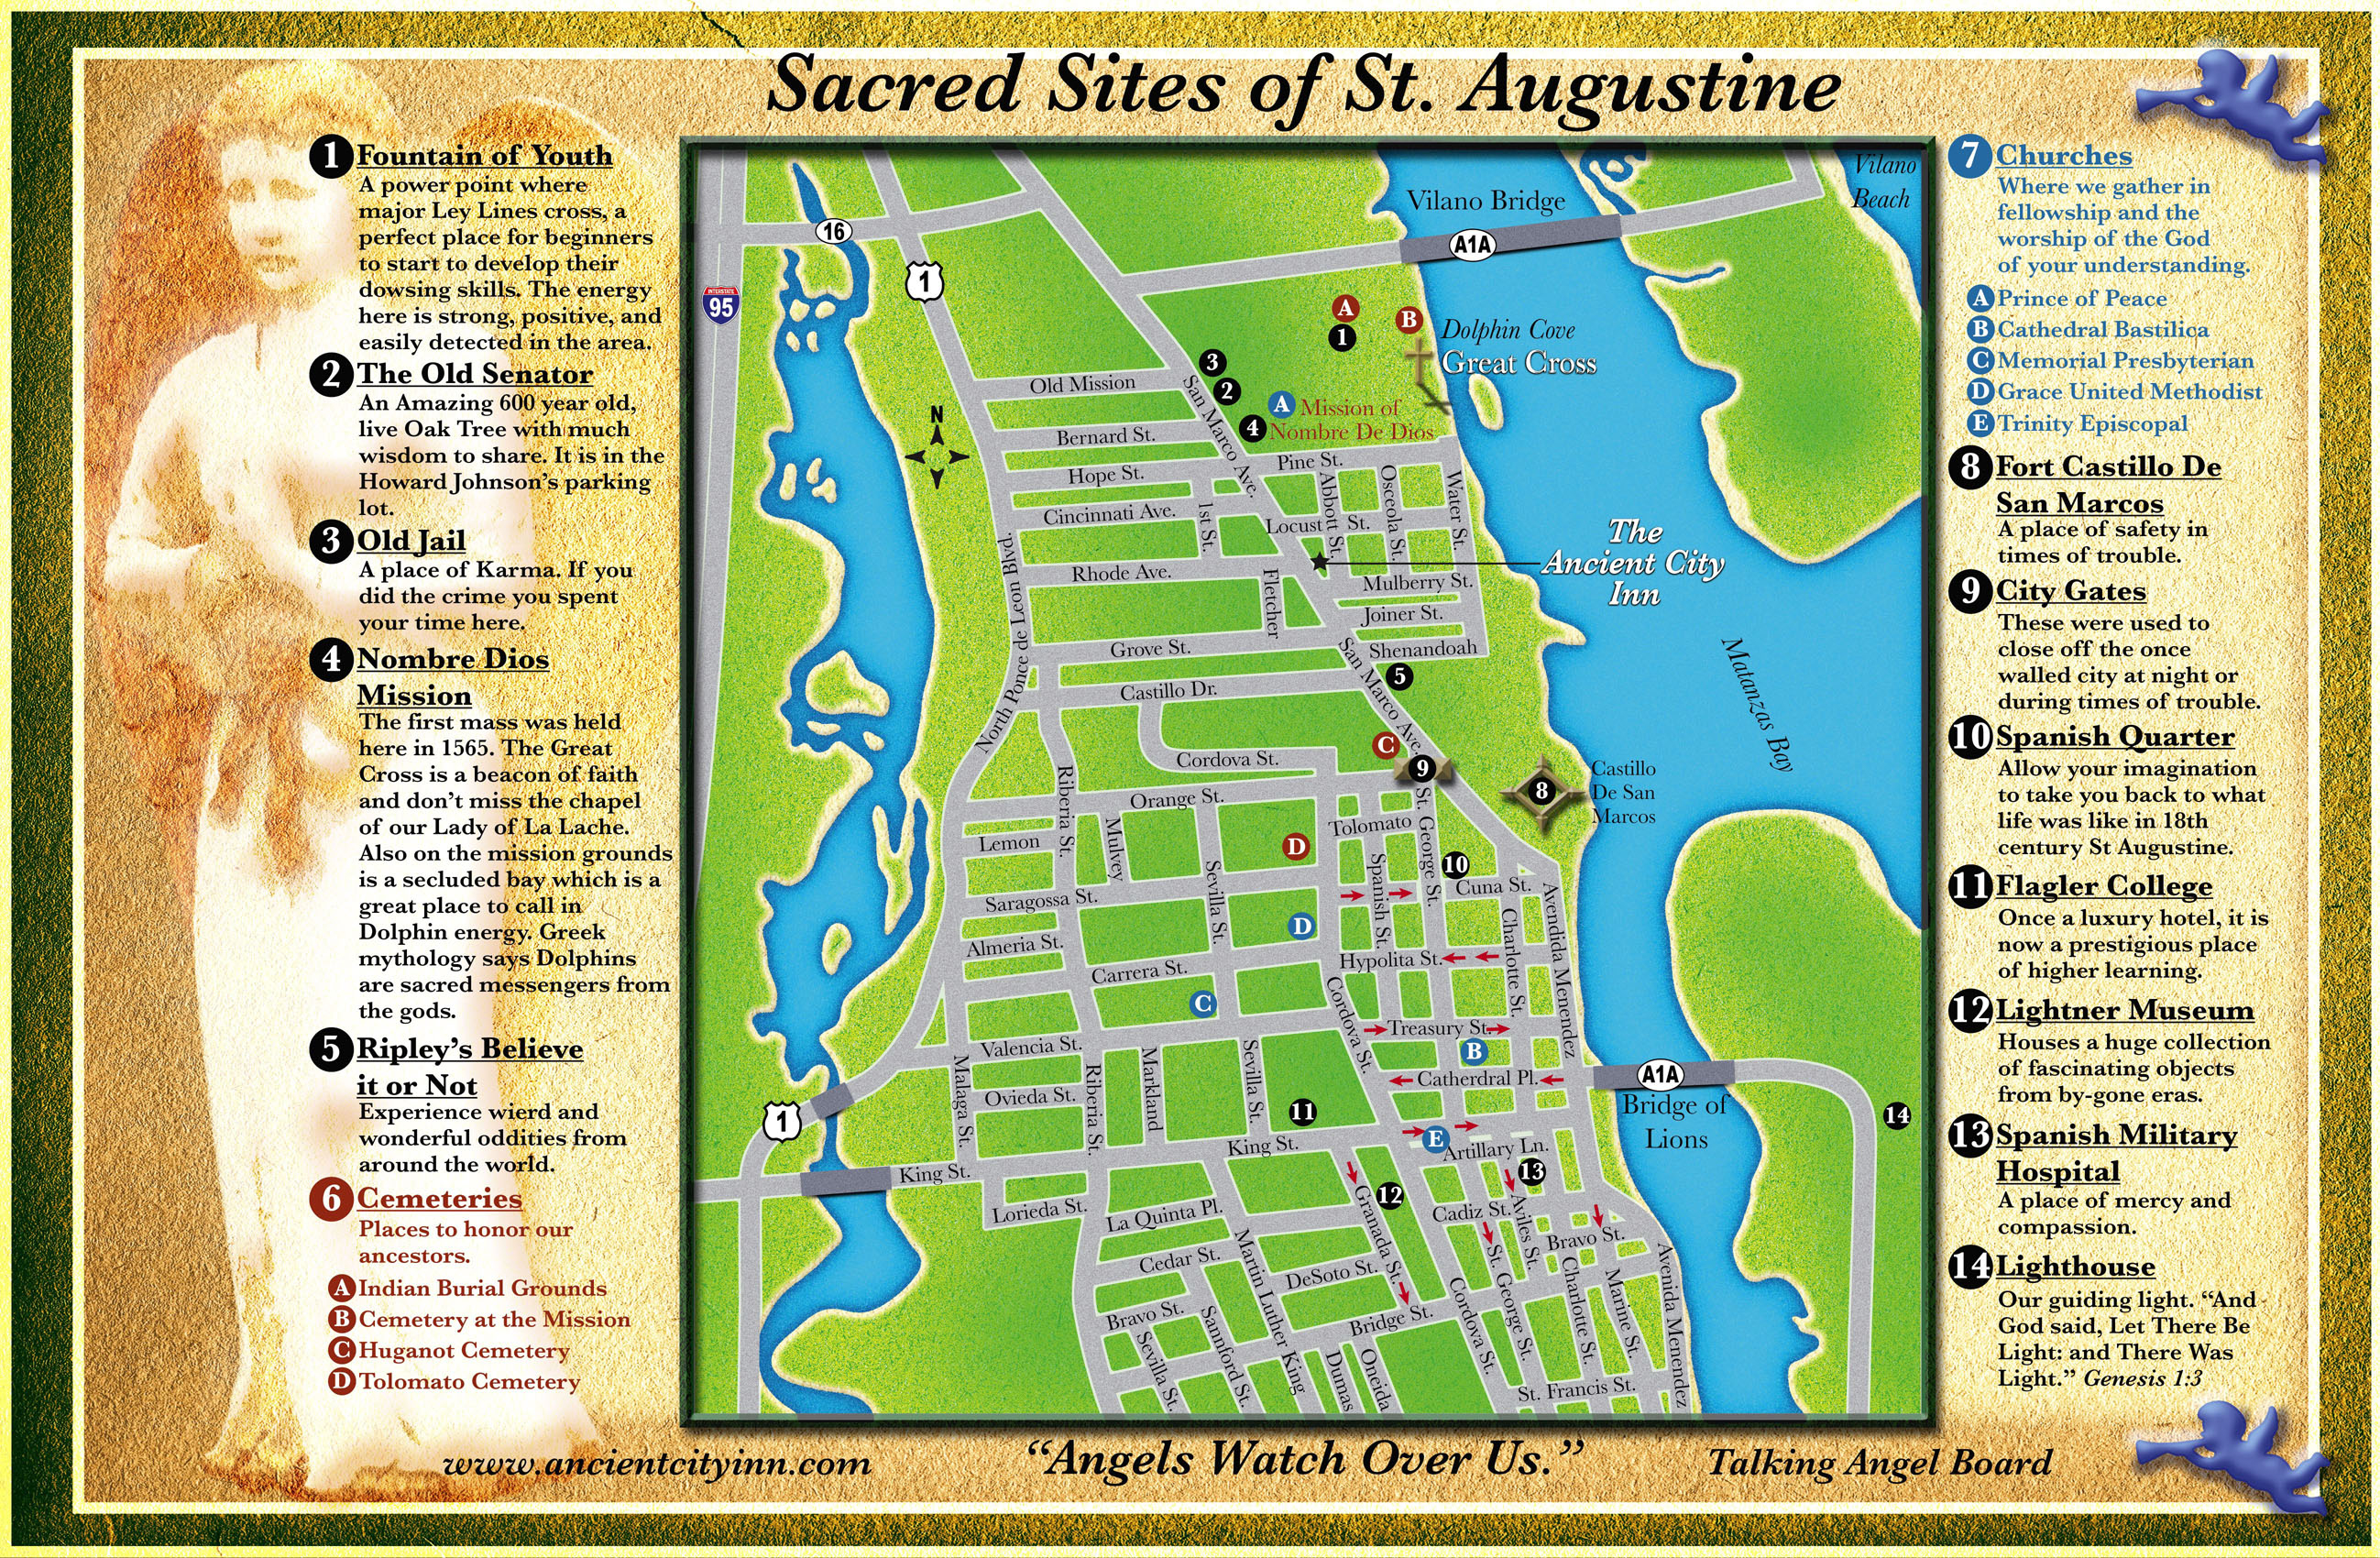 Ancient City Inn B&b Sacred Sites - St Augustine Florida Map Of Attractions